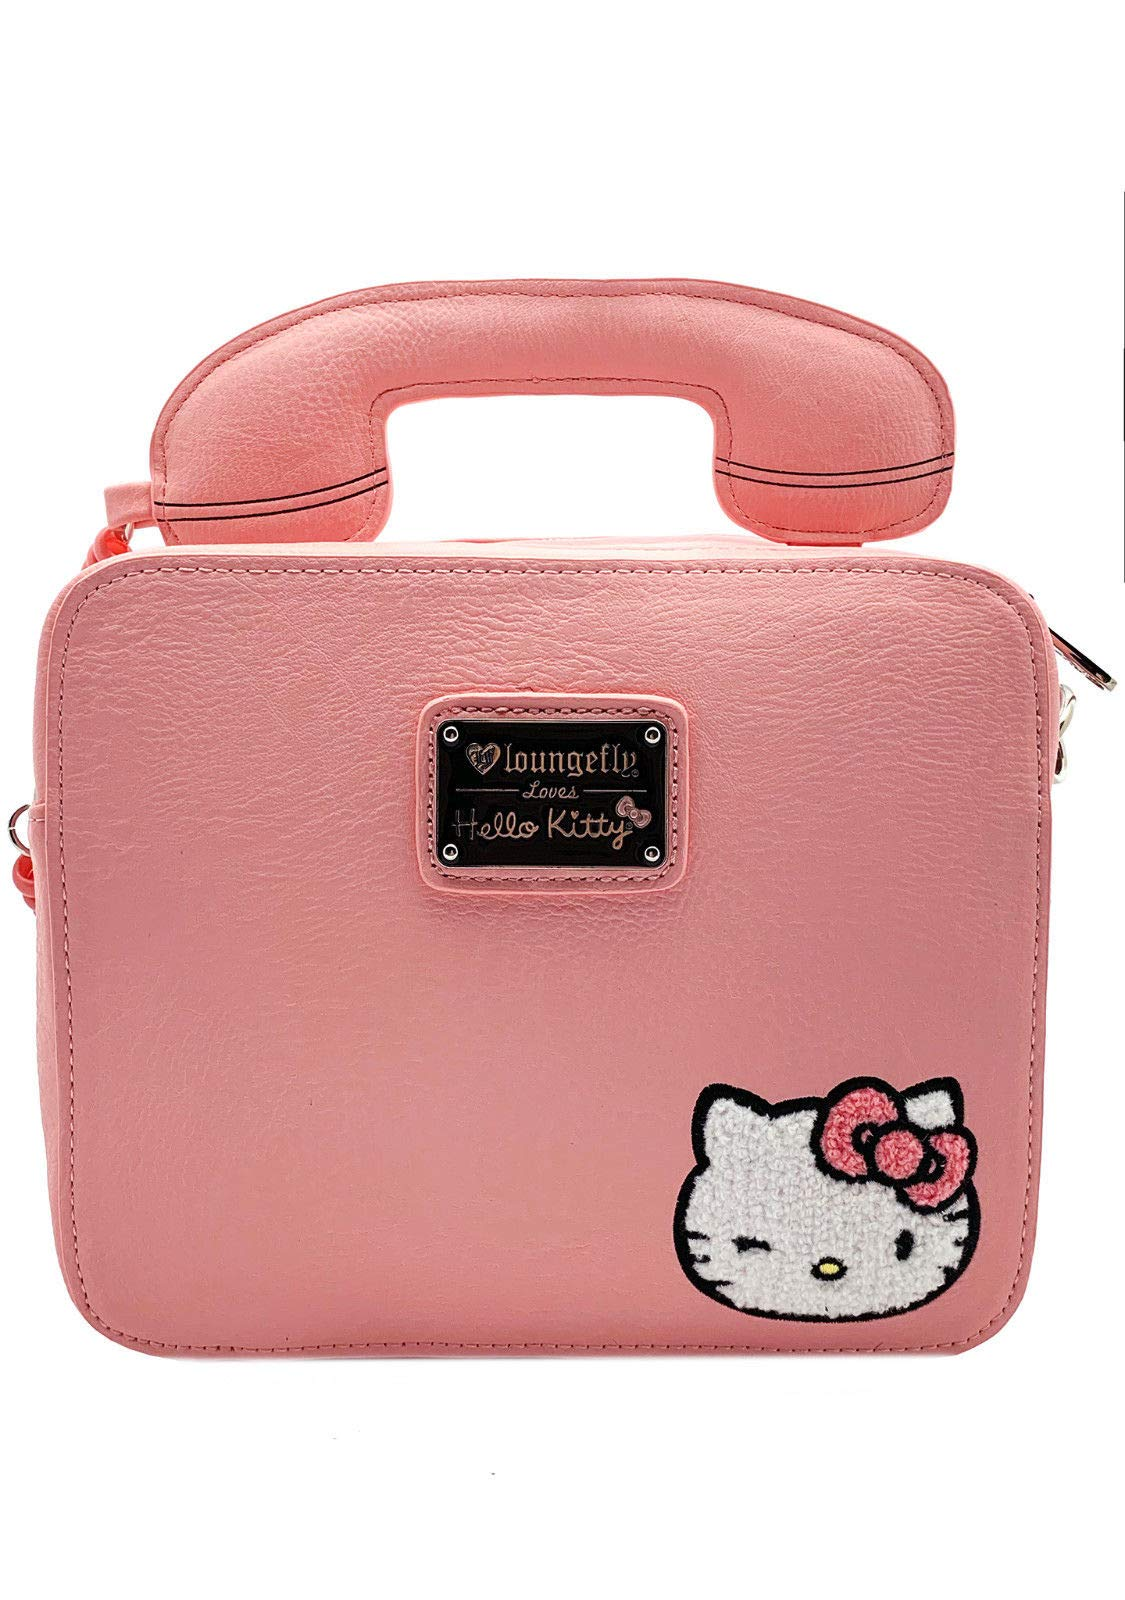 Loungefly x Sanrio Hello Kitty Telephone Call Me Crossbody Purse (One Size, Pink) by Loungefly (Image #3)